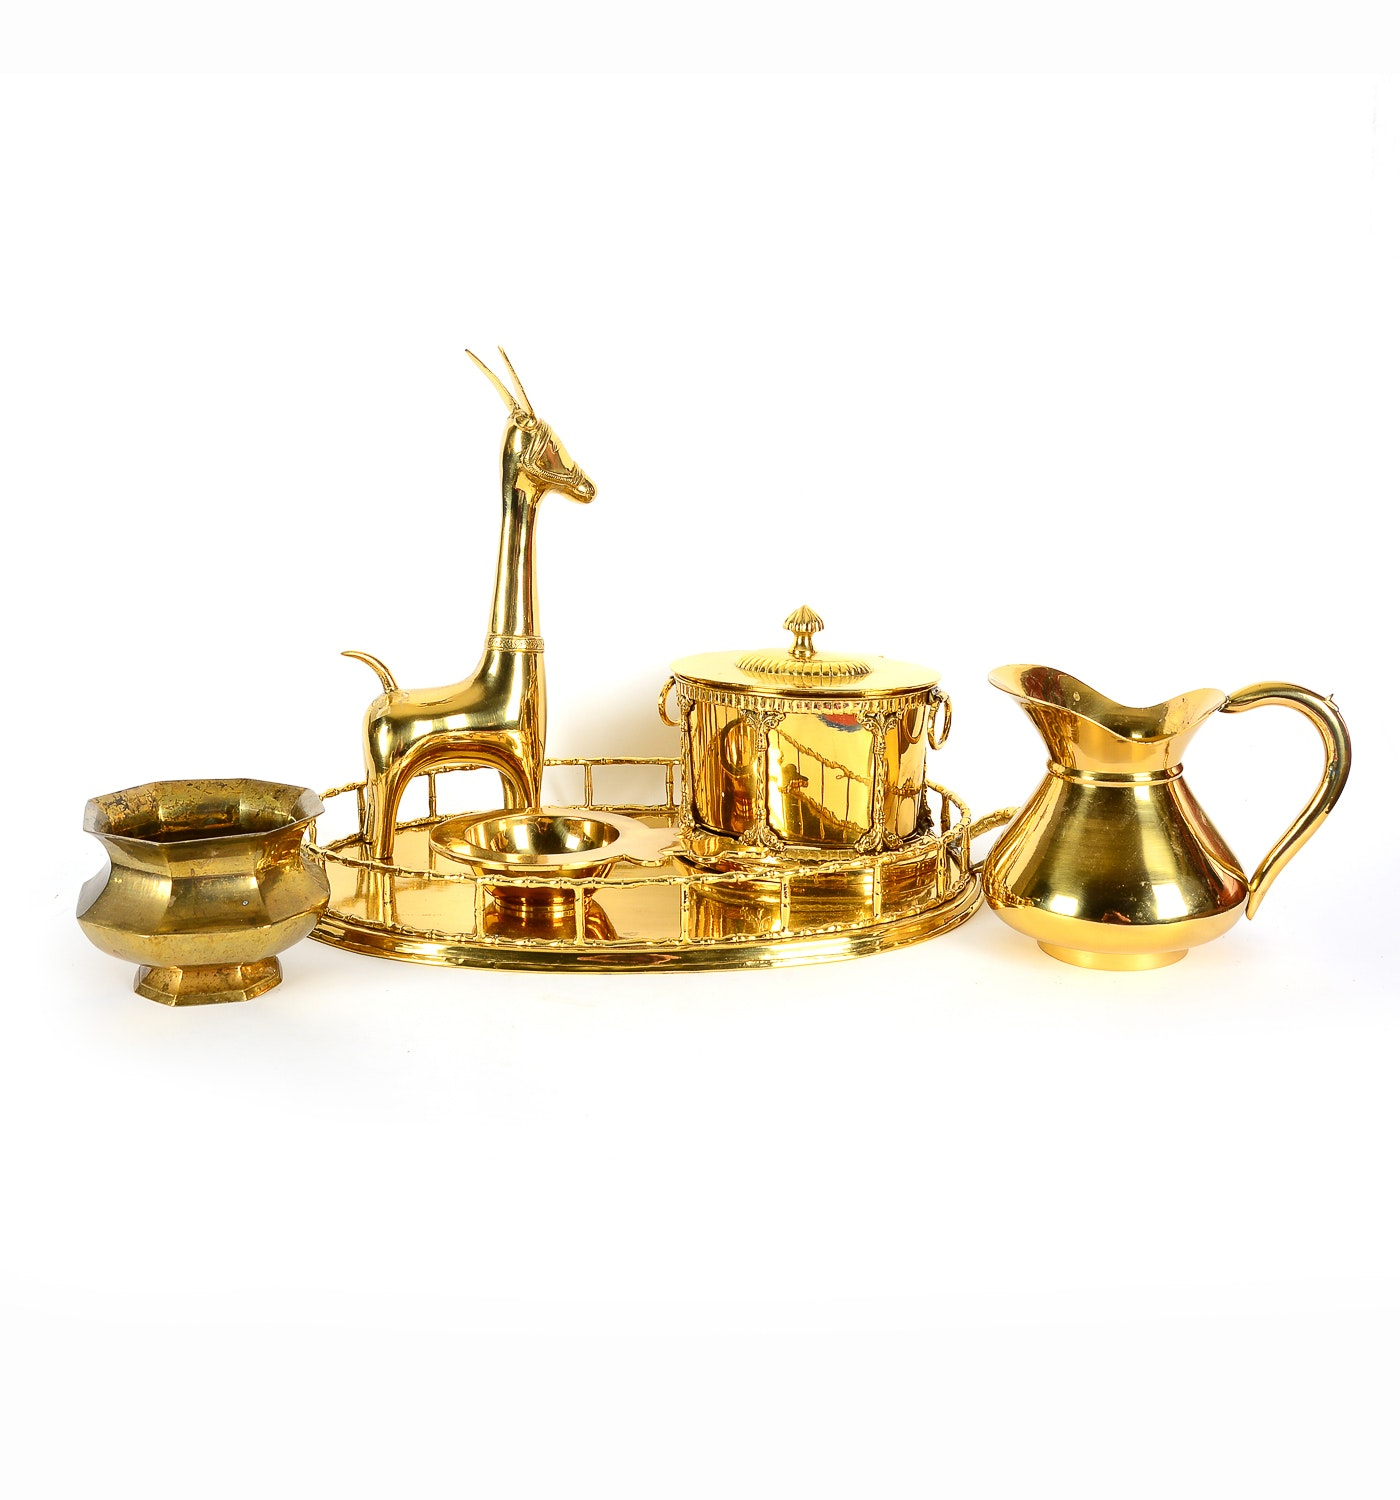 Collection of Brass Decorative Items